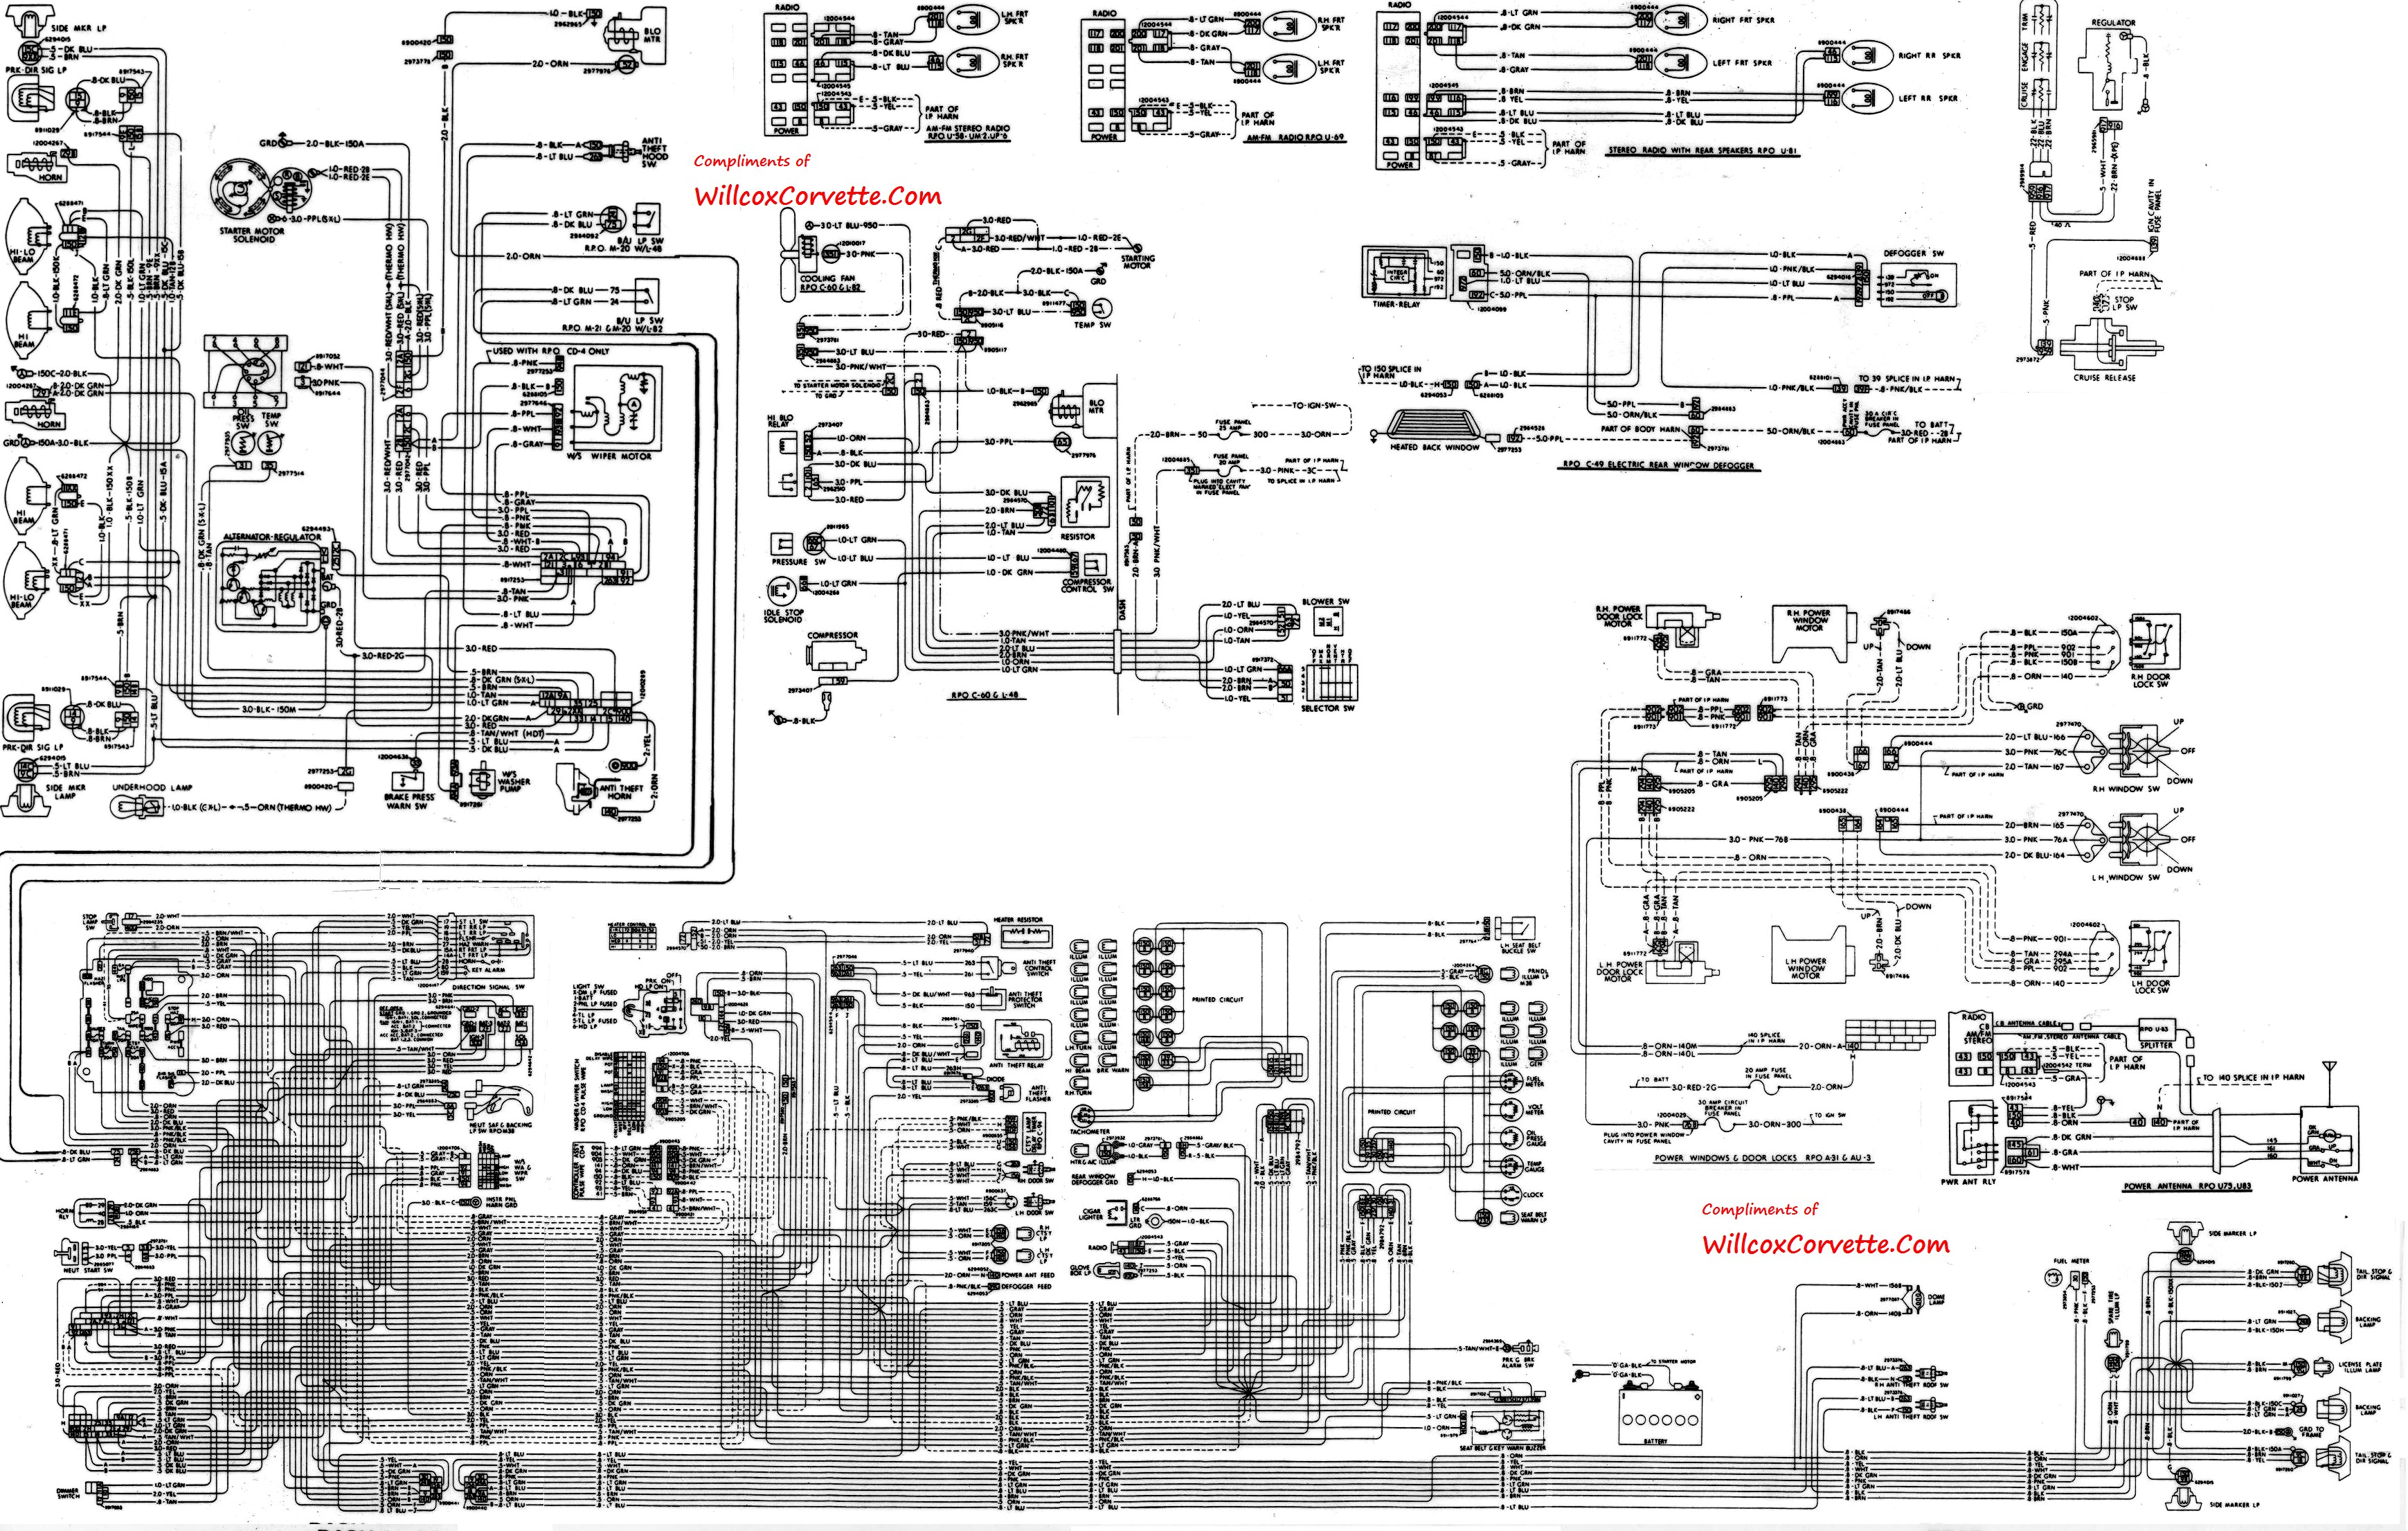 1982 P30 Wiring Diagram - Wiring Library